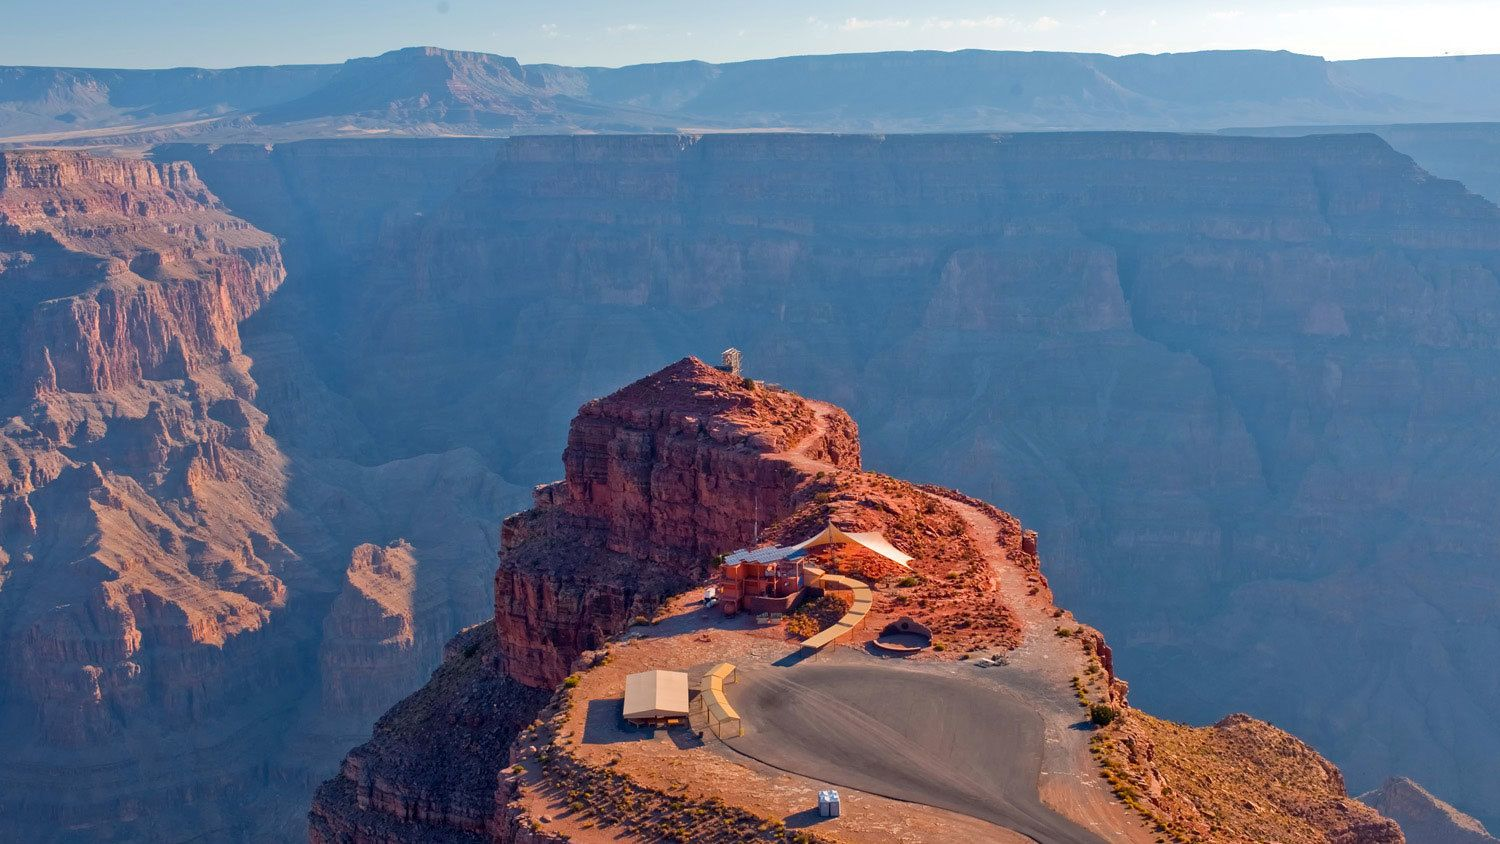 Grand Canyon aerial view from a Mustang helicopter